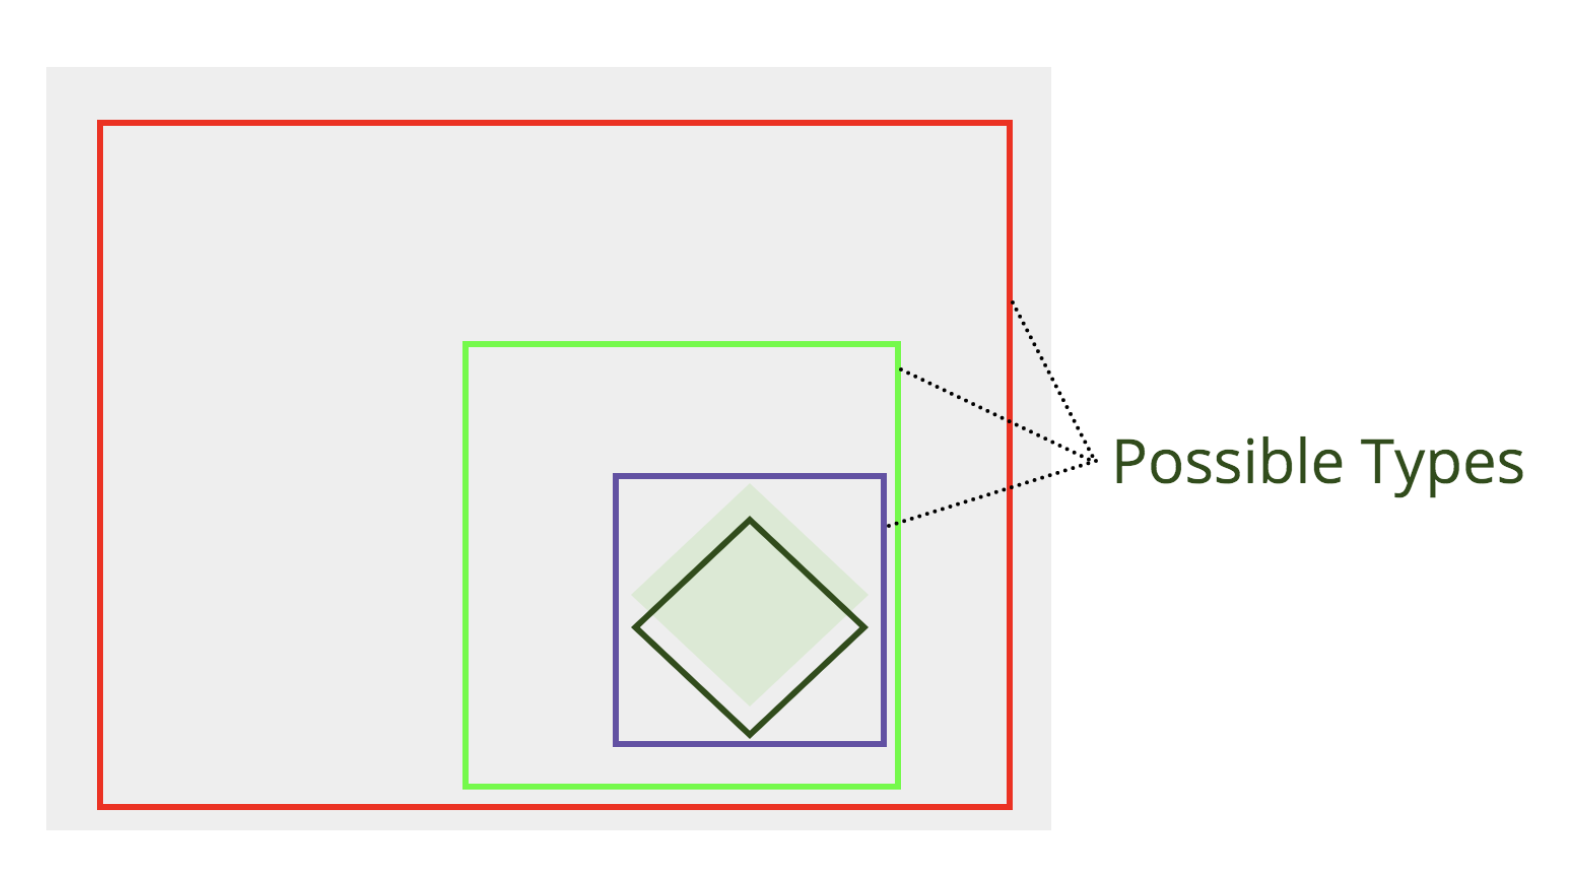 Larger green and red box borders have been drawn around the tests. With the purple box, these represent types of tests.